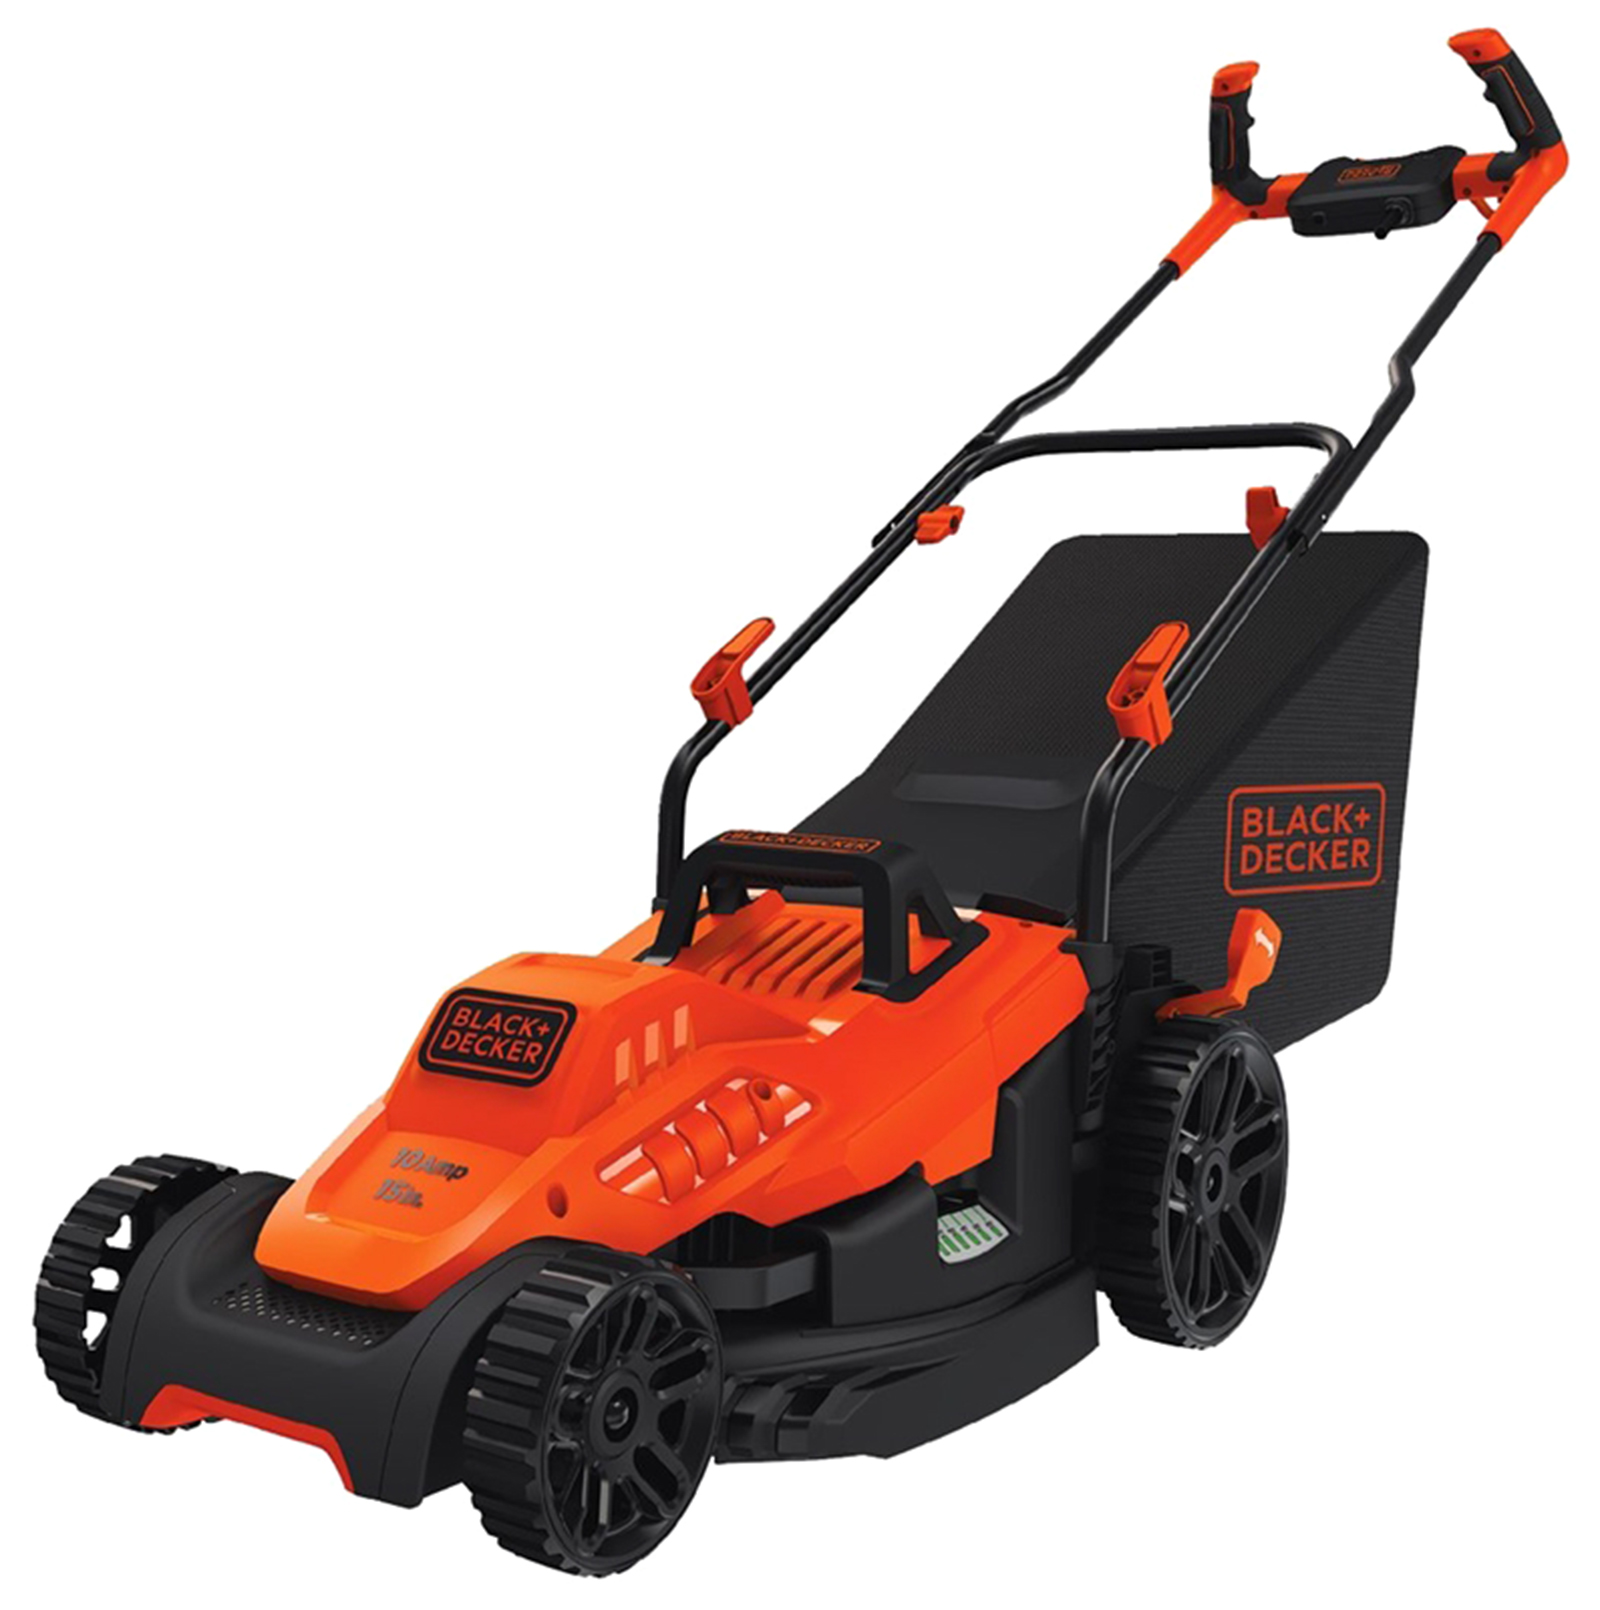 find the best electric lawn mowers from top brands at sears scott s lawn mower wiring diagram black amp decker lawn mower wiring diagram [ 1600 x 1610 Pixel ]